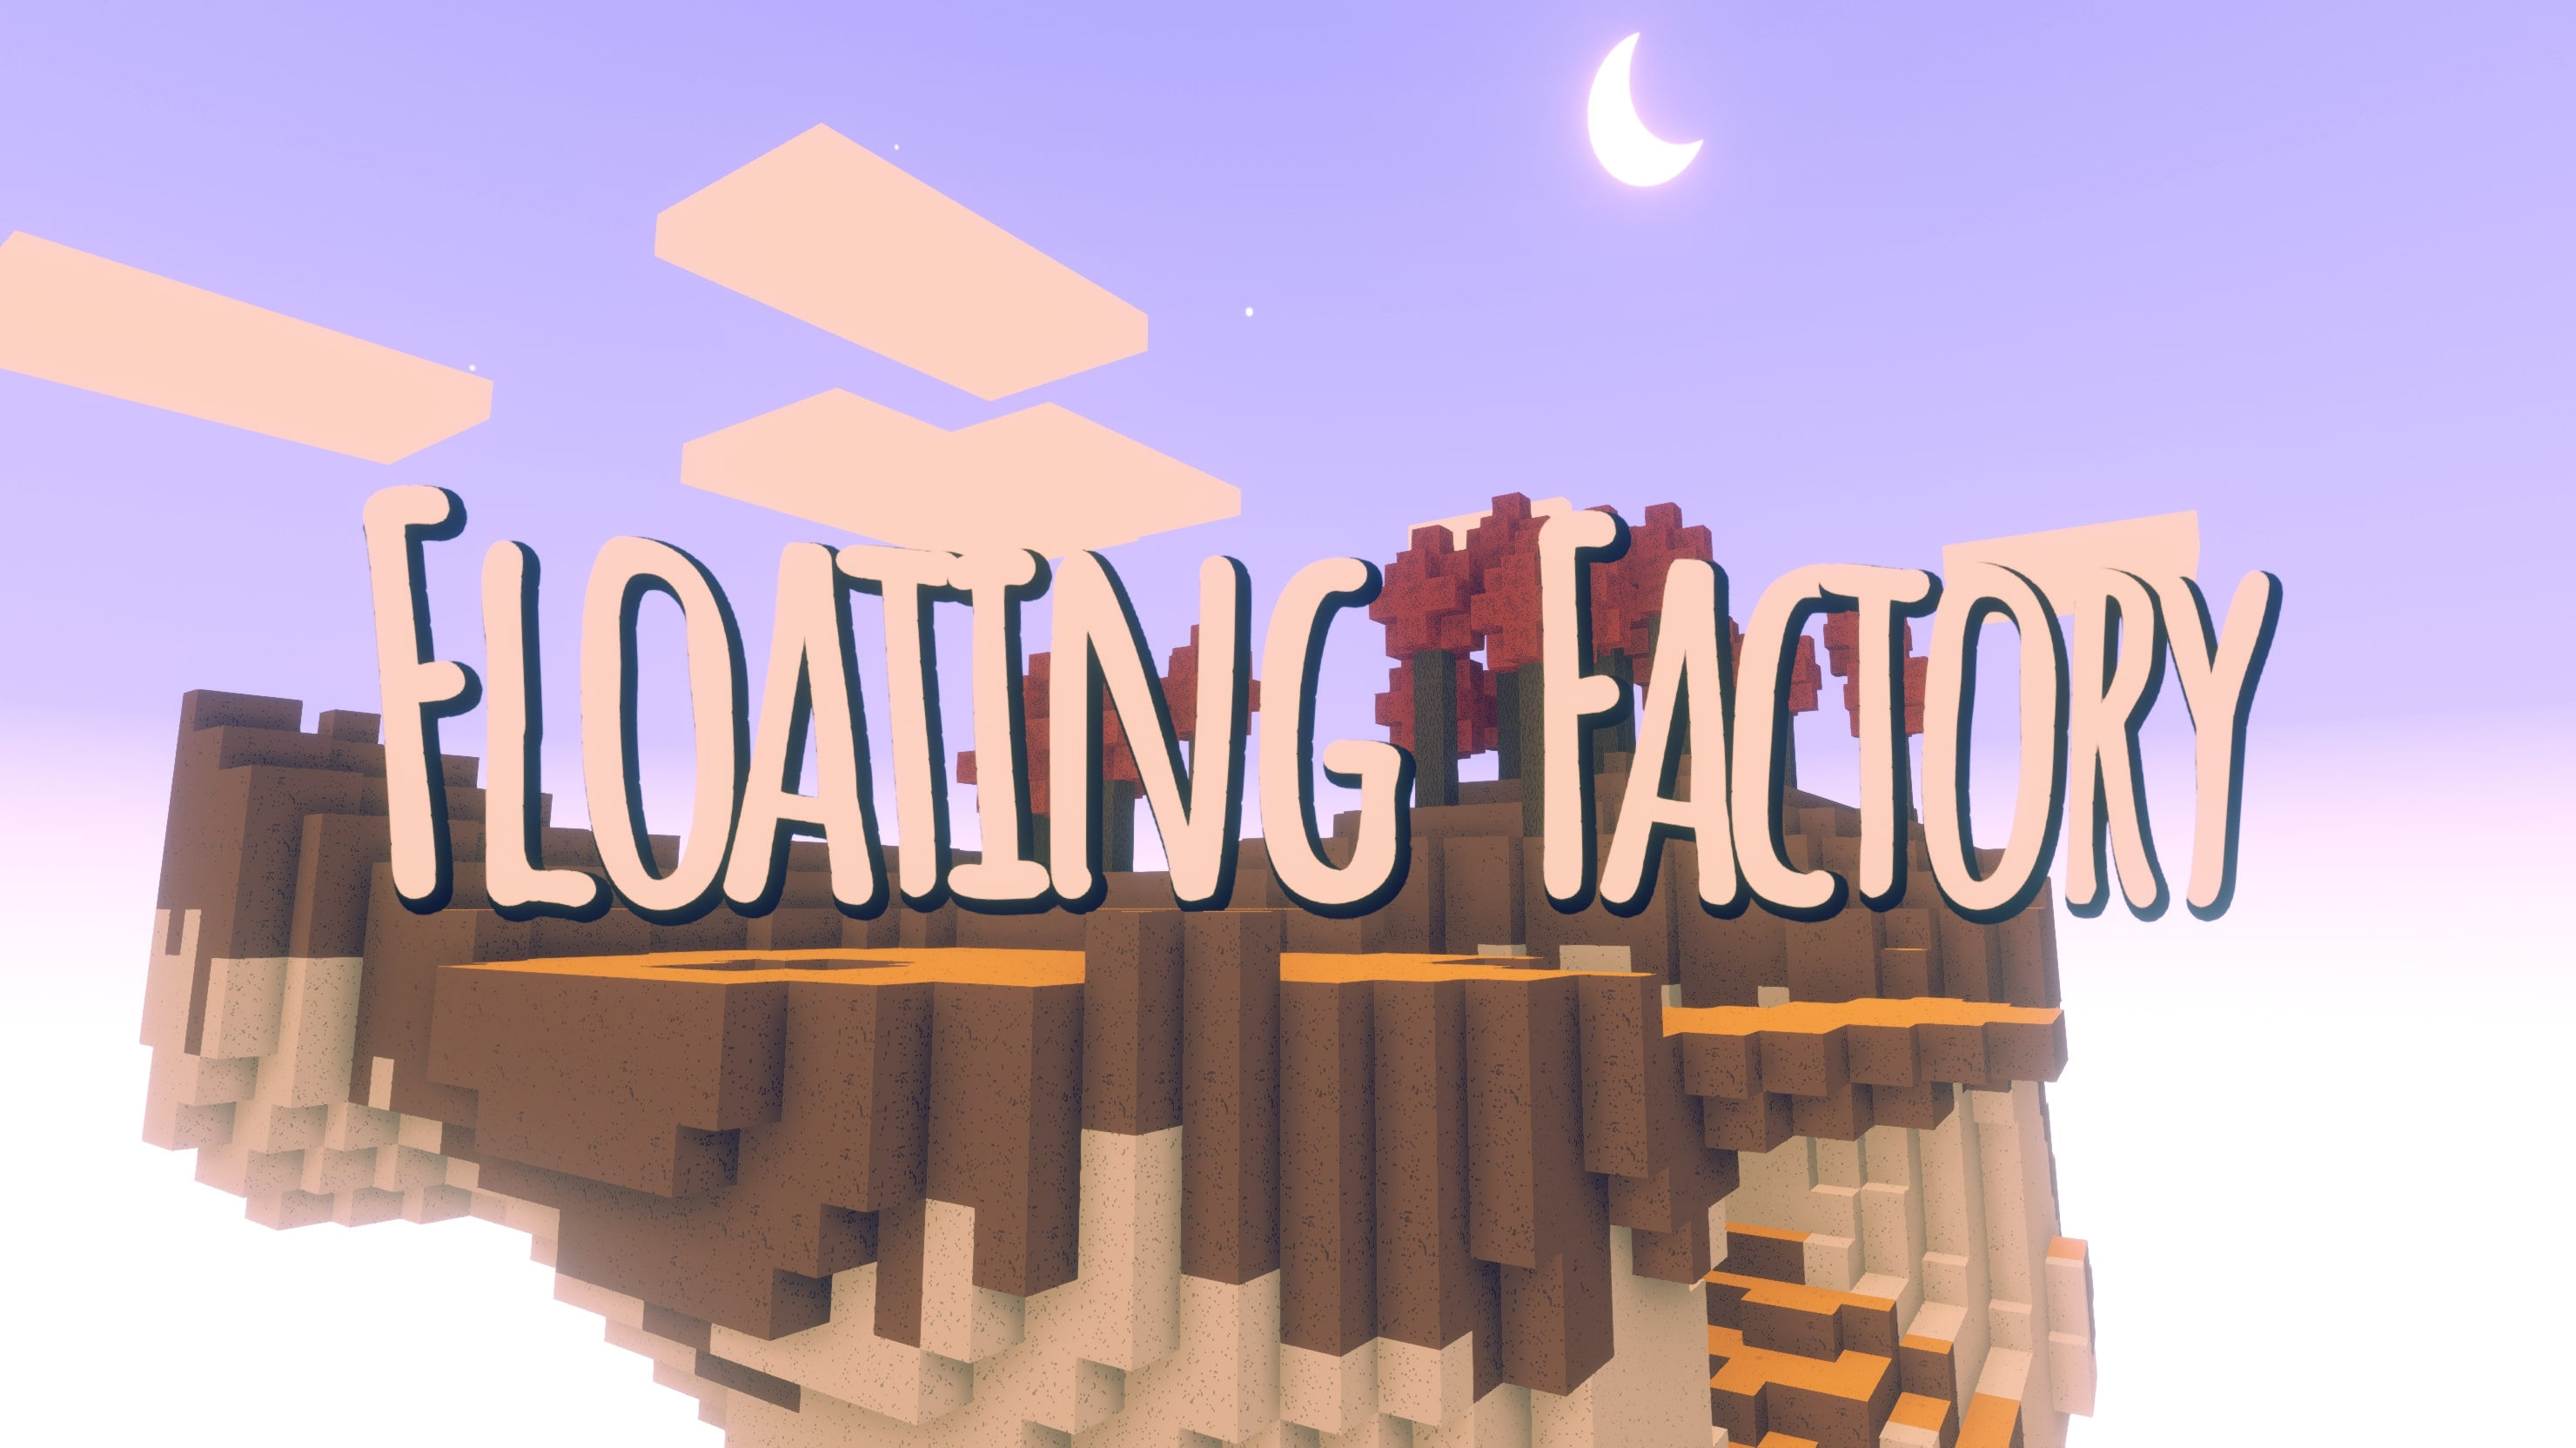 Floating Factory